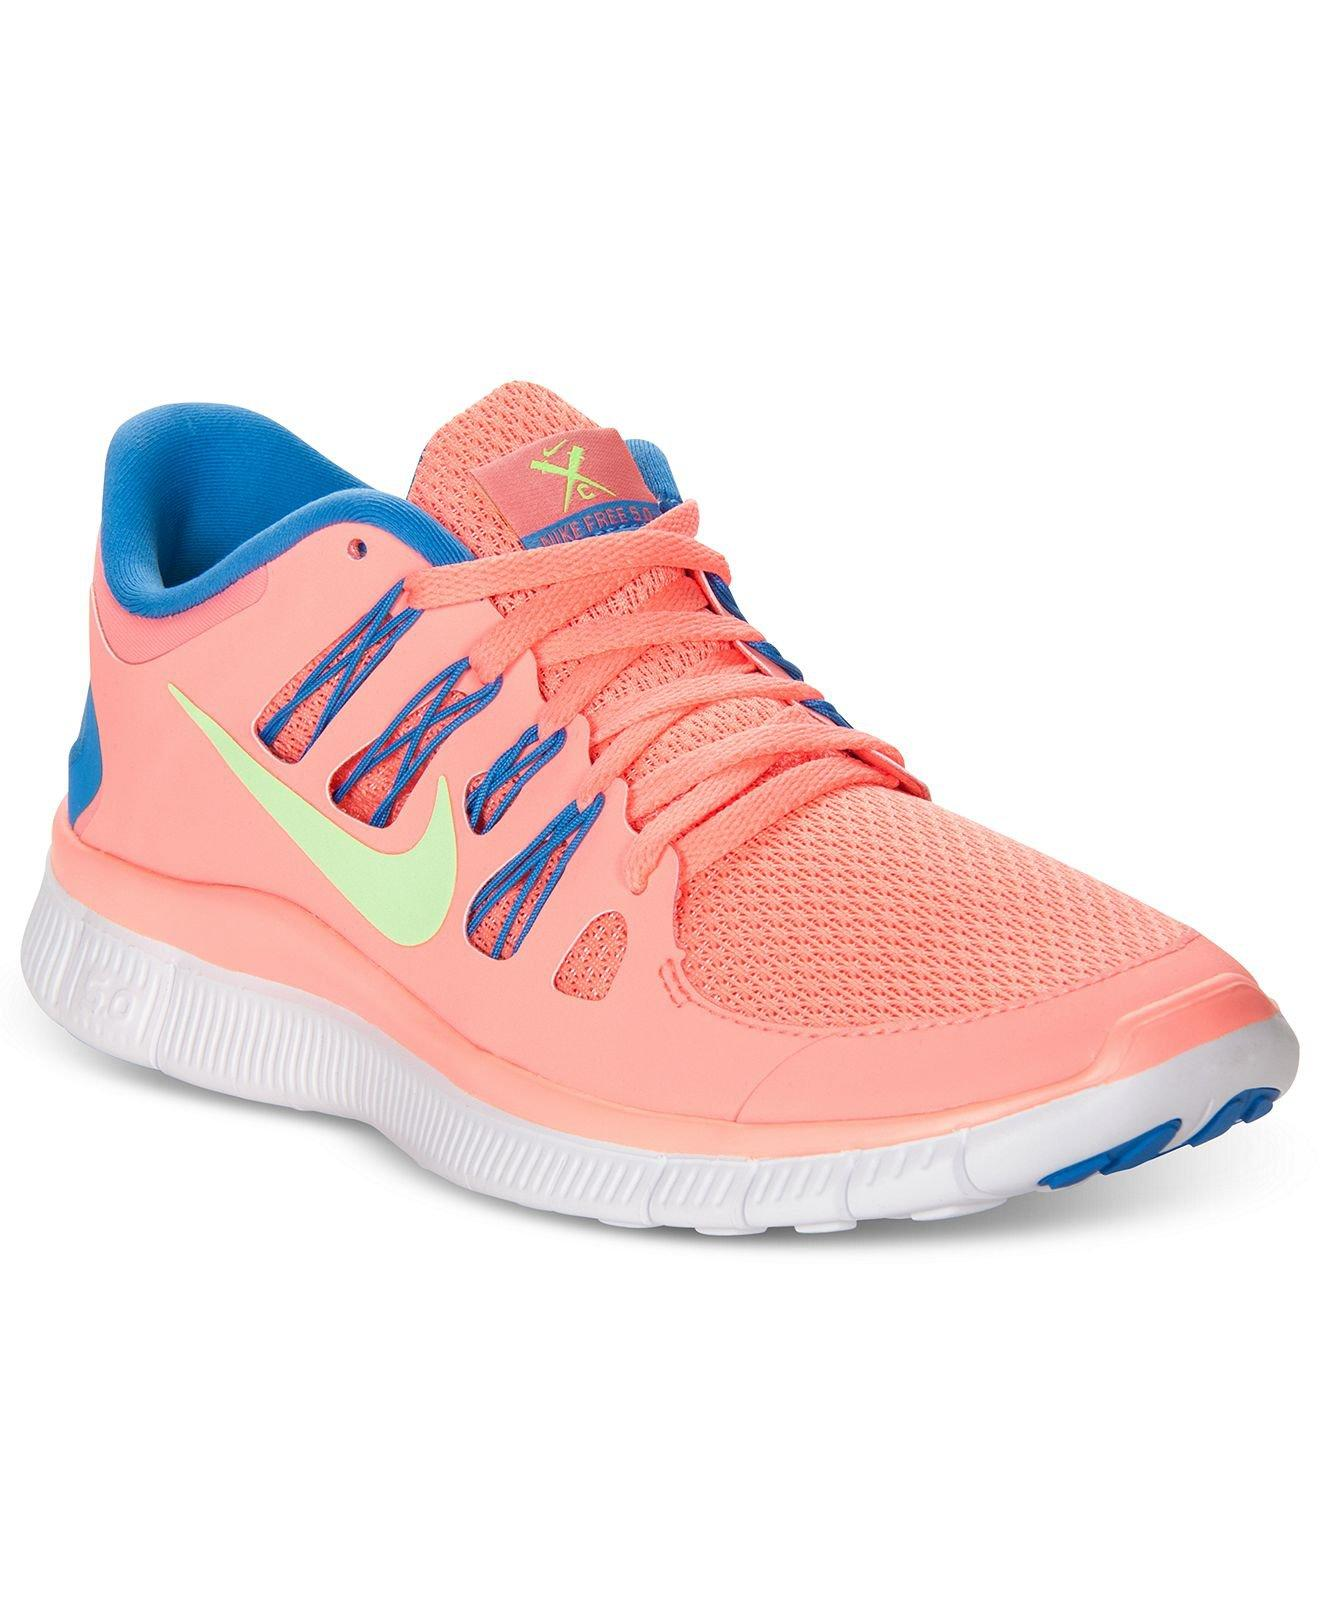 Nike Women's Shoes, Free 5.0+ Sneakers - from Macys | Epic